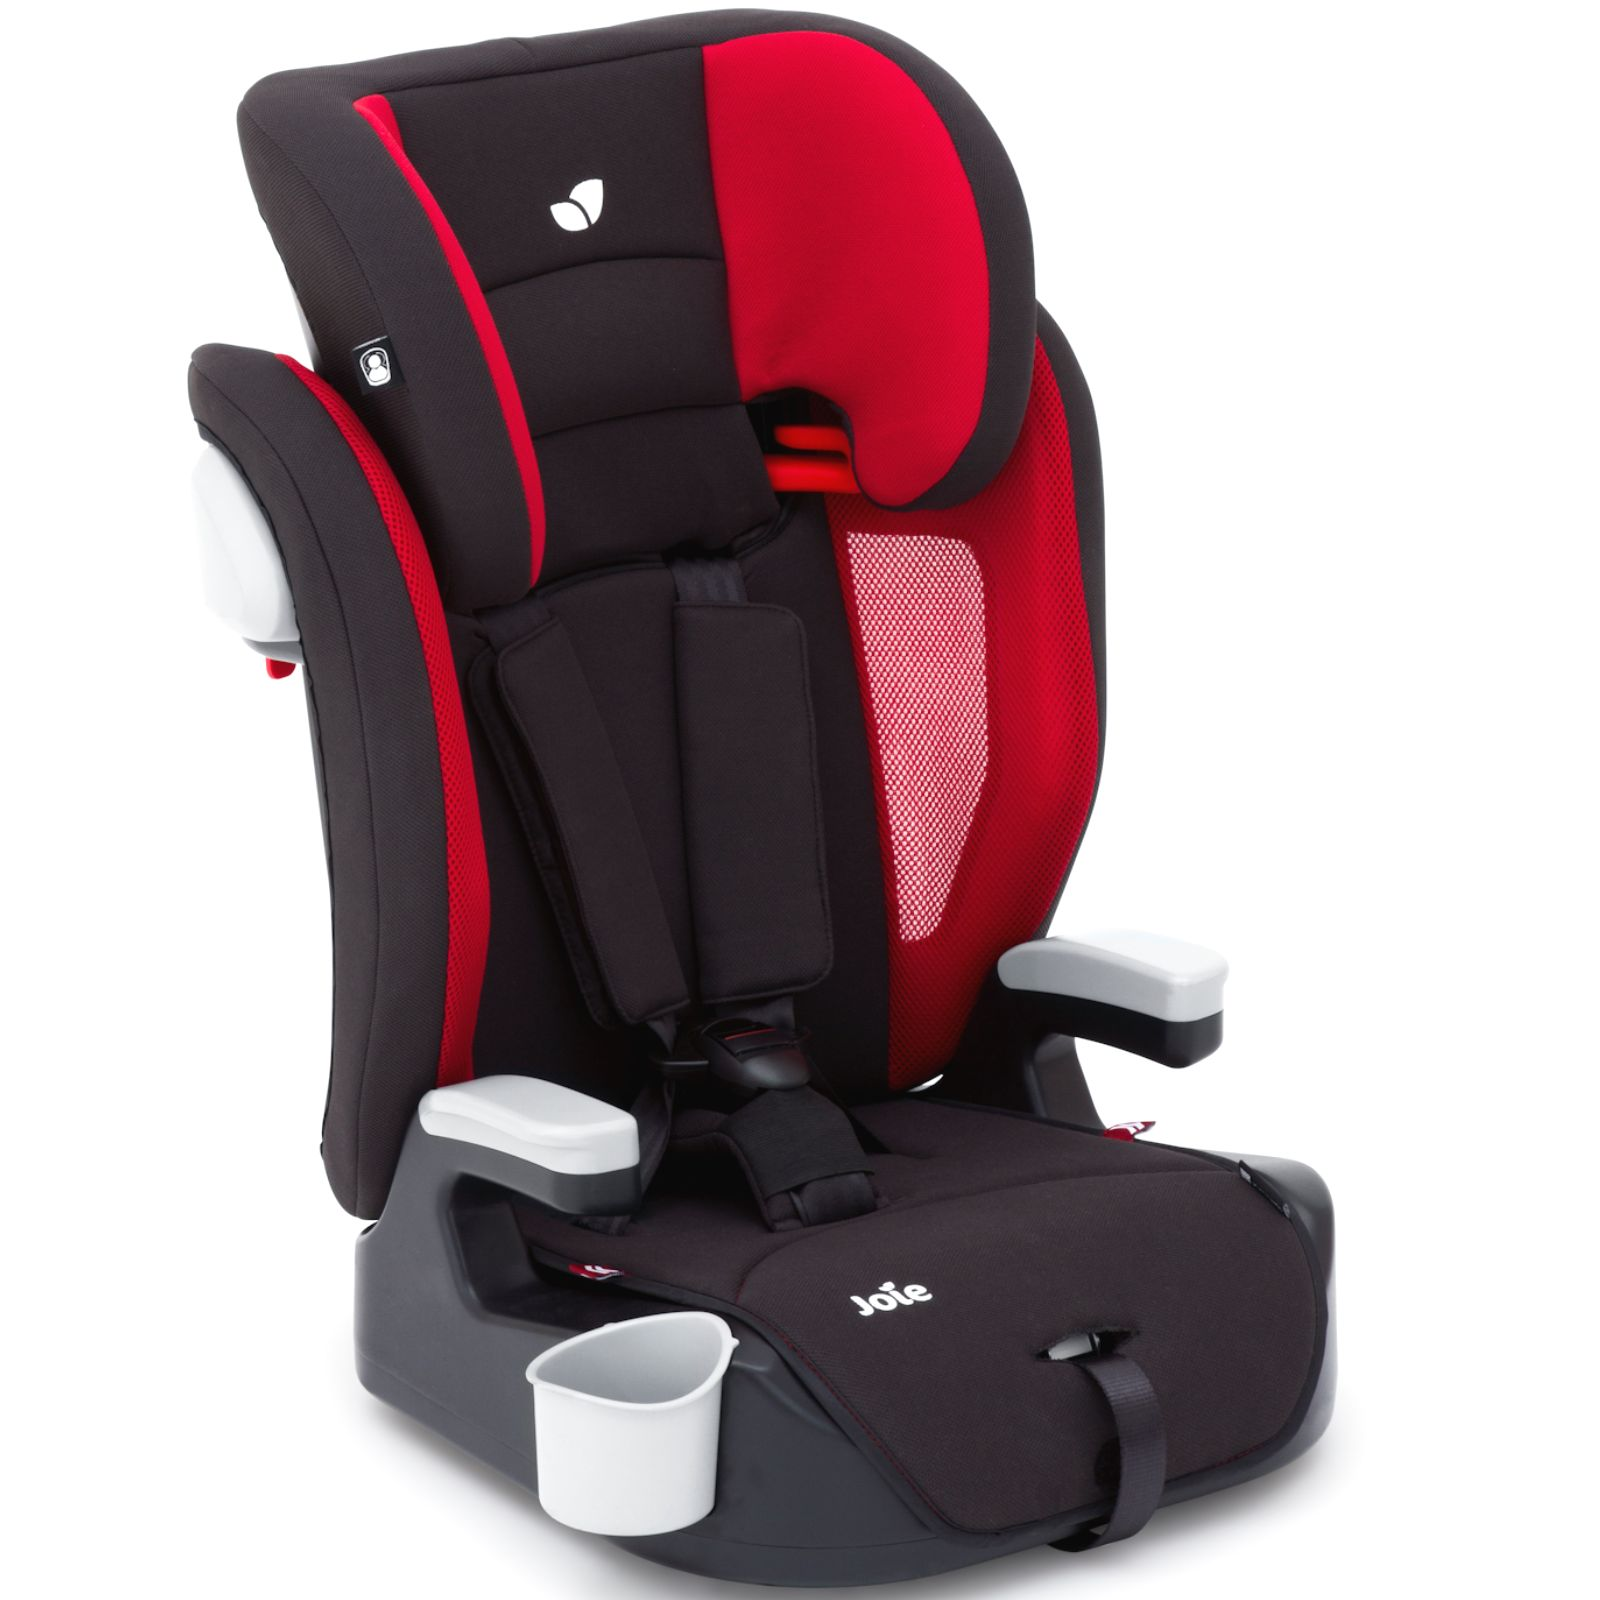 ID NP17428 Joie Elevate Group 123 High Back Booster Car Seat